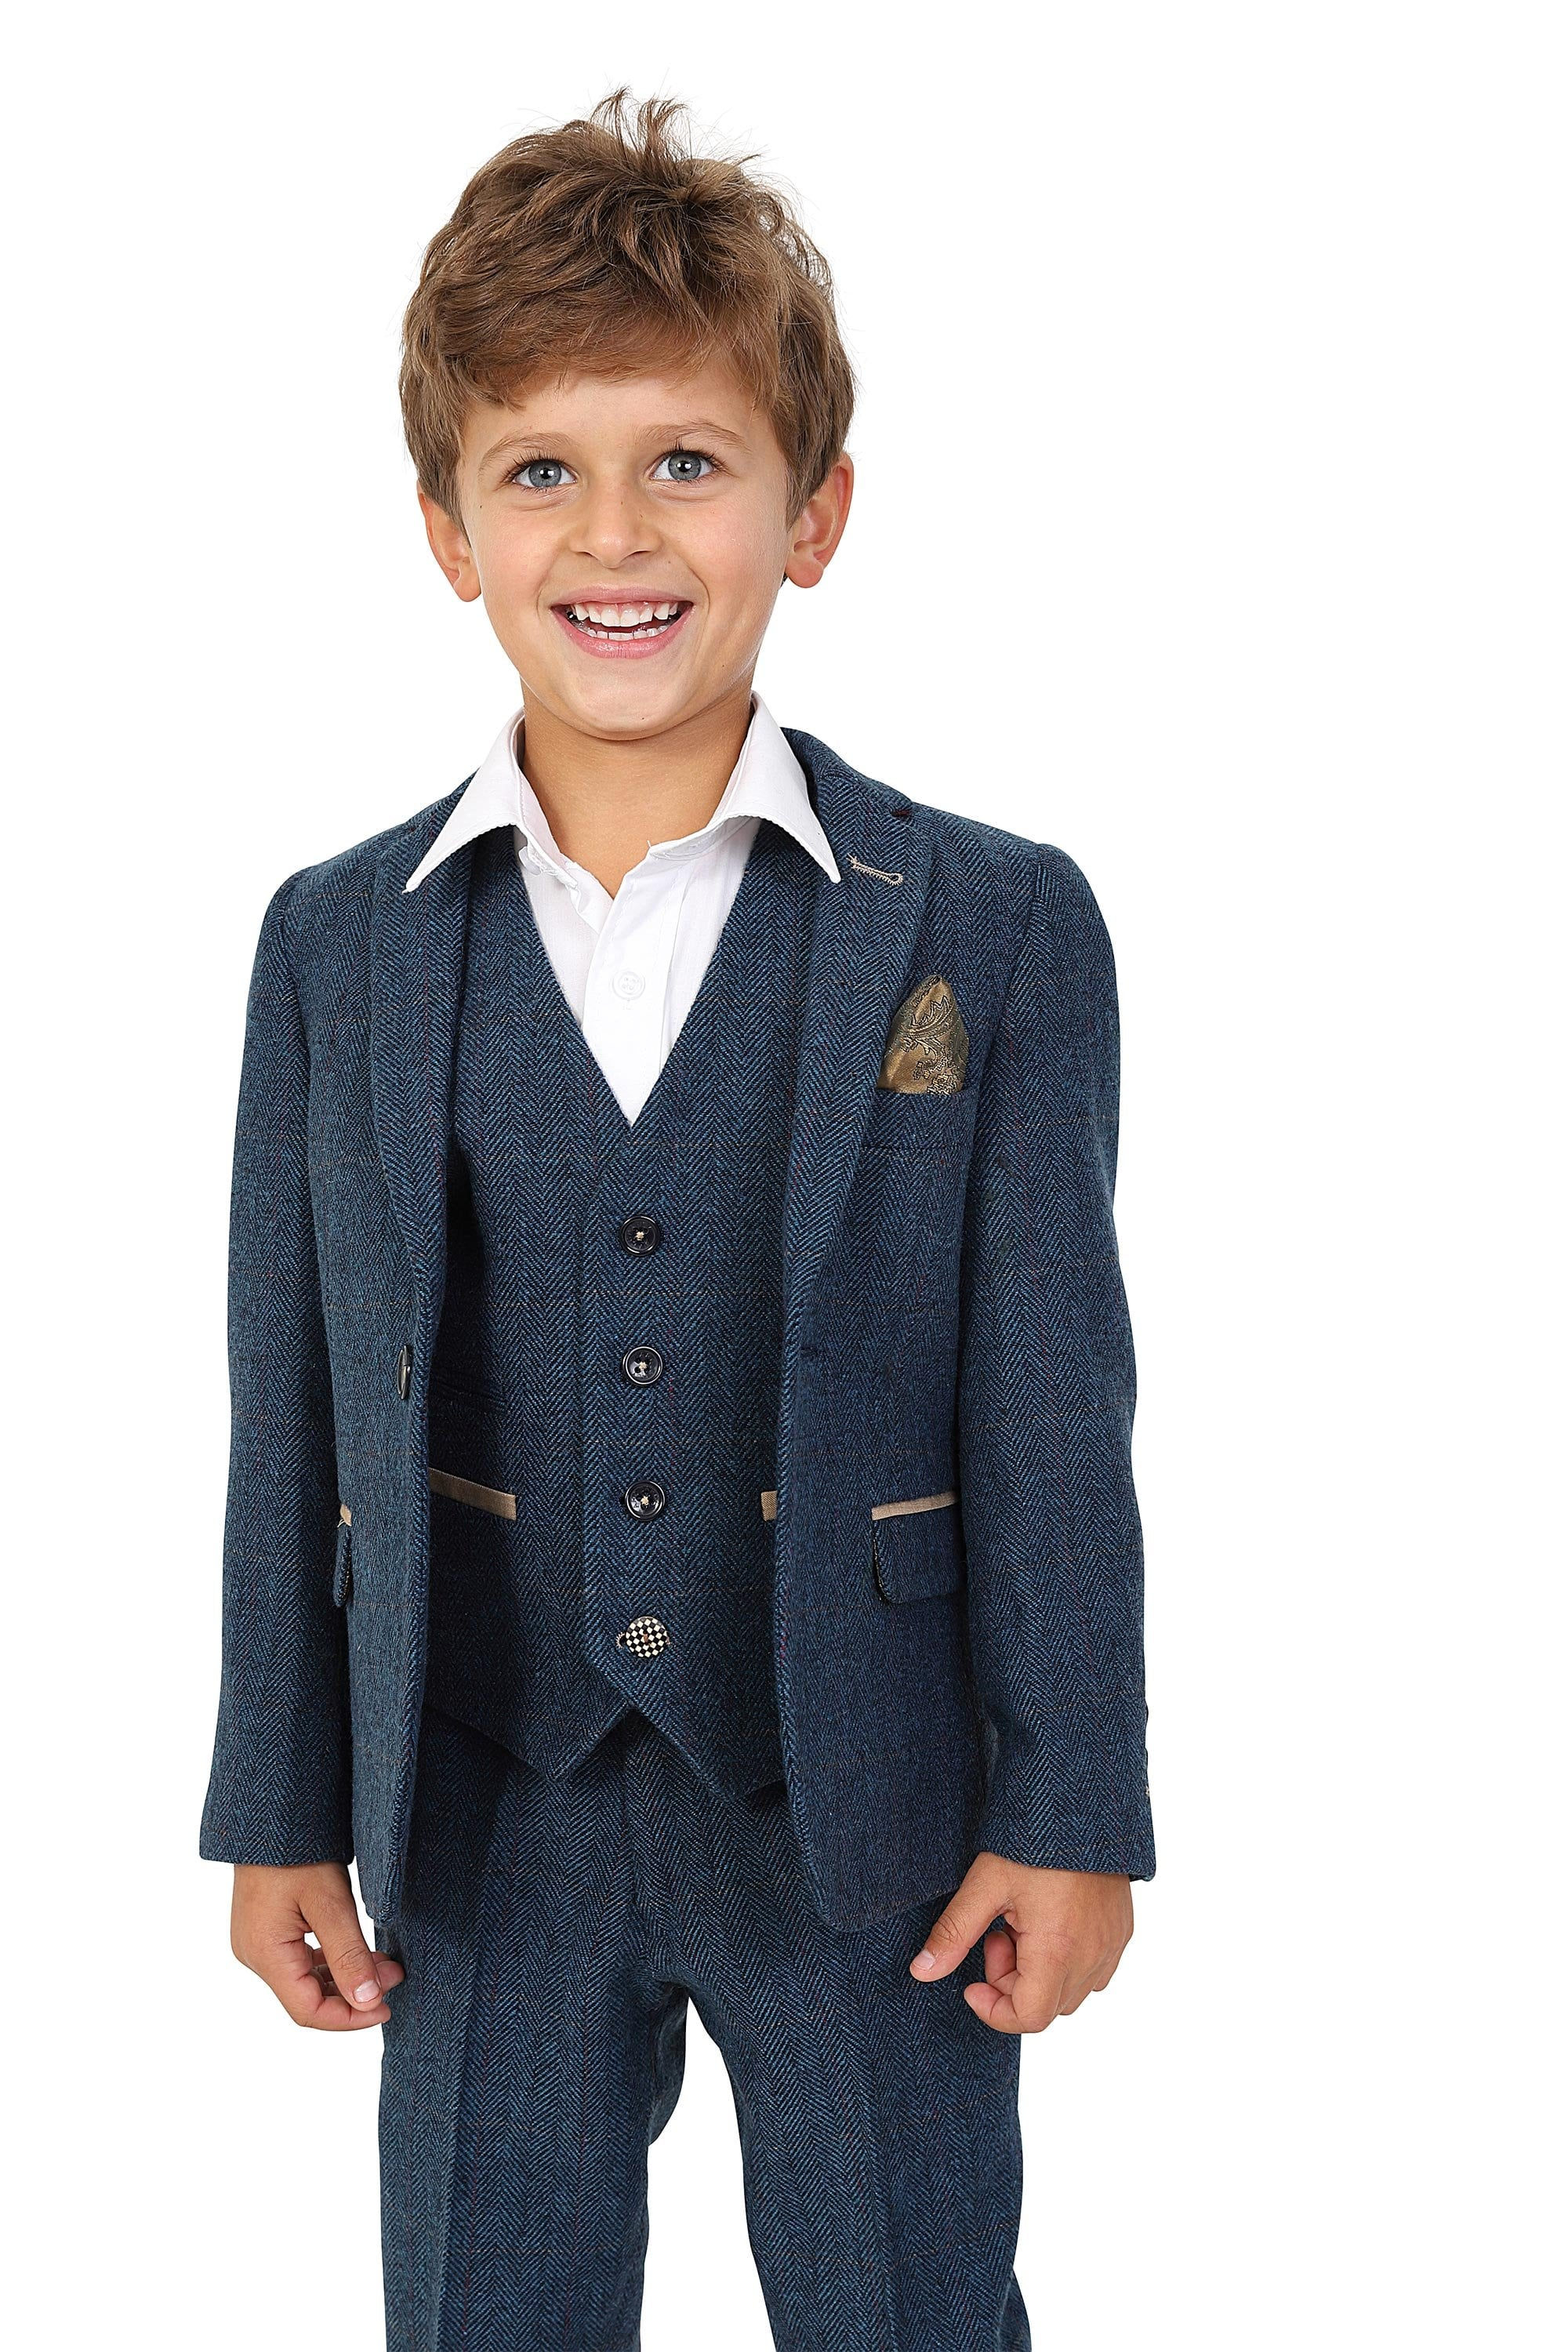 stable quality official shop for genuine Marc Darcy Kids Boys Dion Blue Check Tweed Three piece Suit